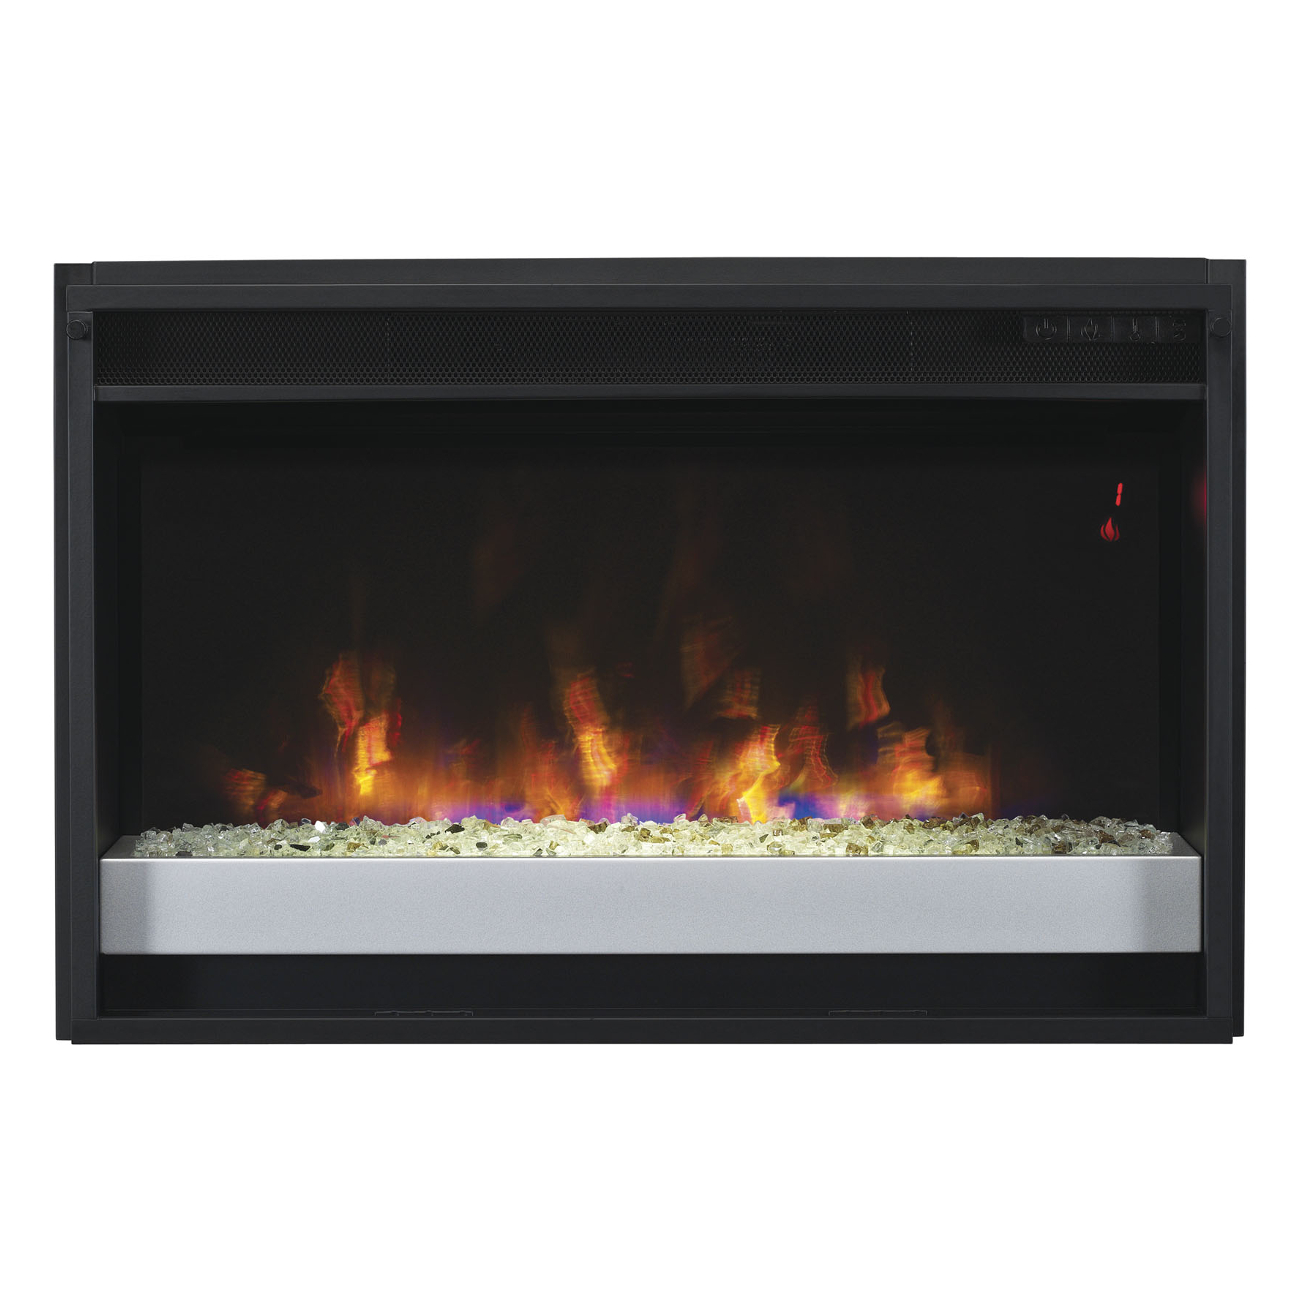 Classic Flame 27 Electric Fireplace Insert 26ef031gpg 201